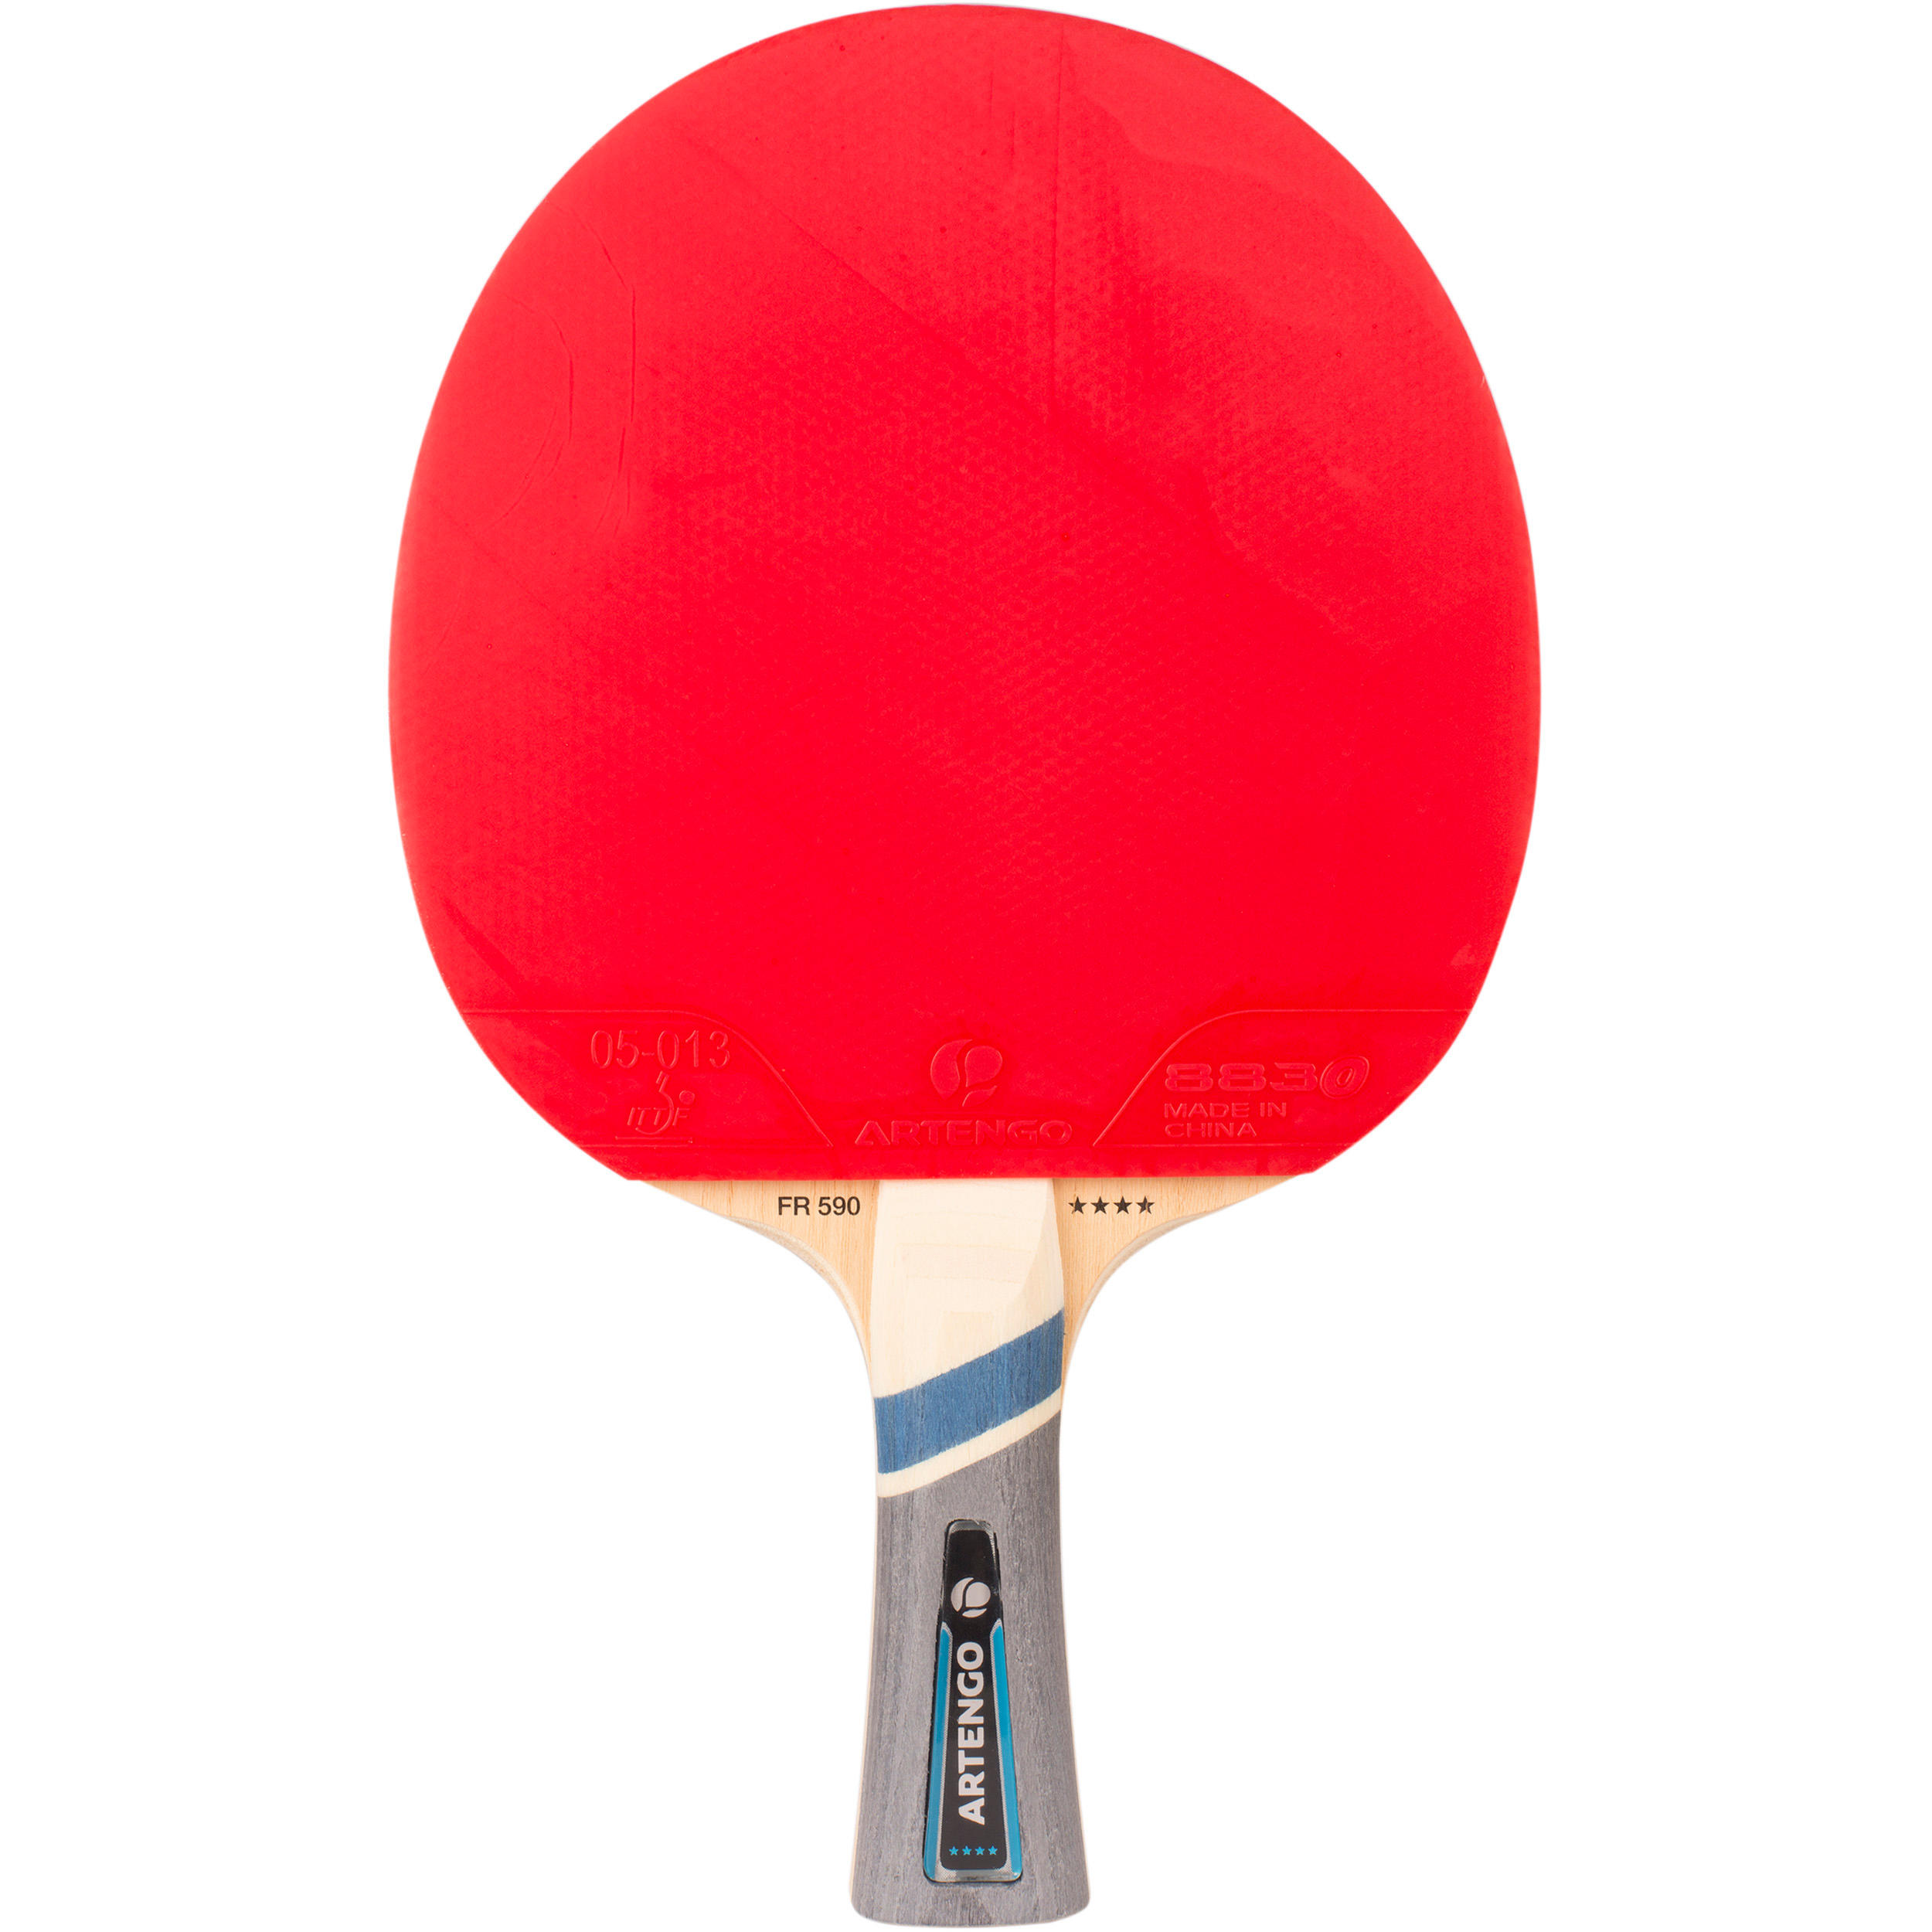 FR 590 4* Table Tennis Paddle